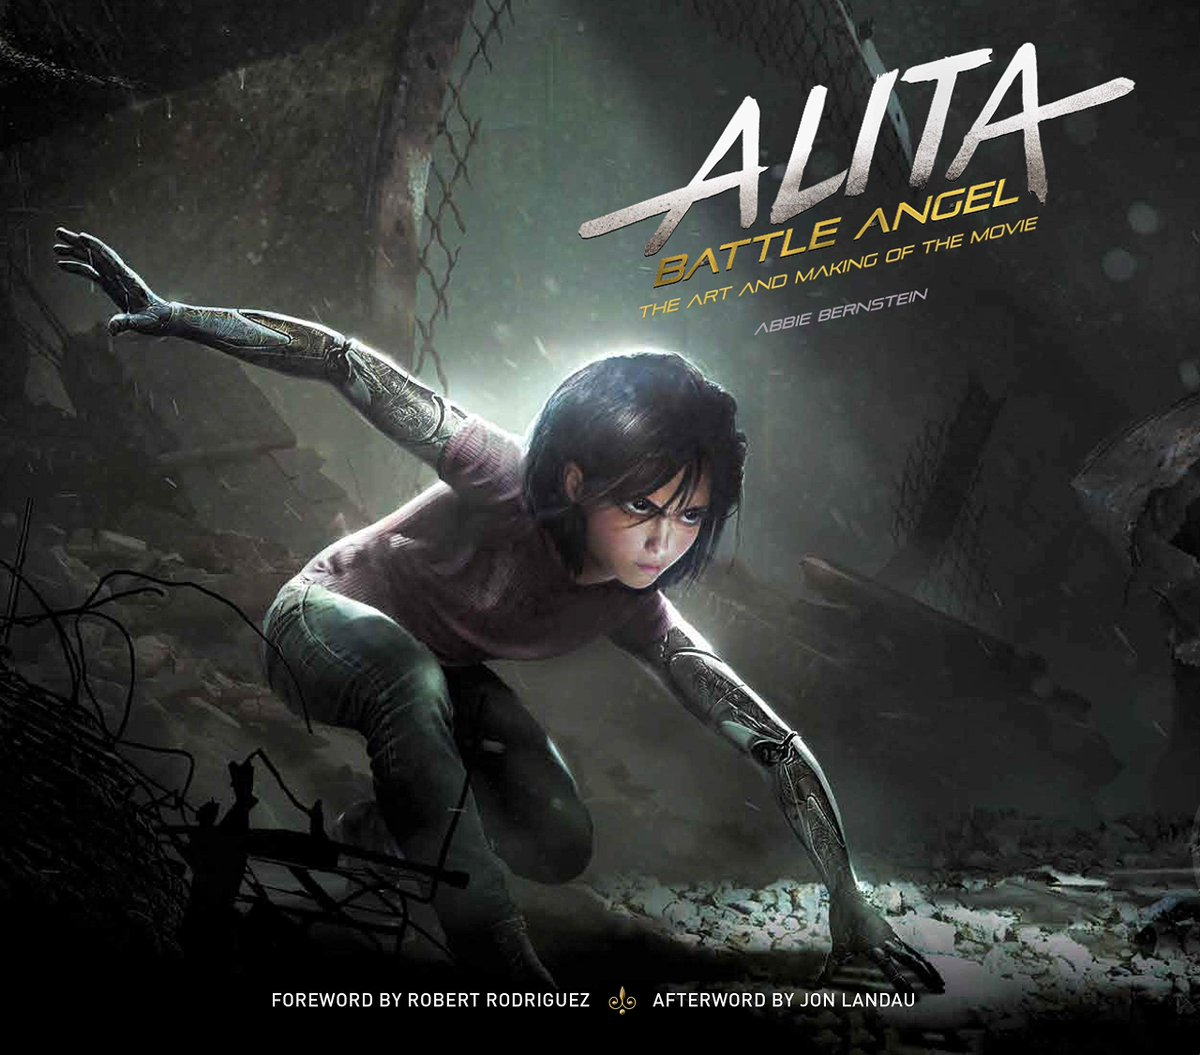 Heads-up for everyone from the EU (or beyond) who has ordered the #Alita #Artbook for the @AlitaMovie, but is still waiting till maybe mid June. GER Amazon has the original hardcover/english edition in stock for the moment. -----  https://www. amazon.de/gp/product/178 5658085/ref=ppx_yo_dt_b_asin_title_o00_s00?ie=UTF8&amp;psc=1 &nbsp; … <br>http://pic.twitter.com/iTPpuFhs14